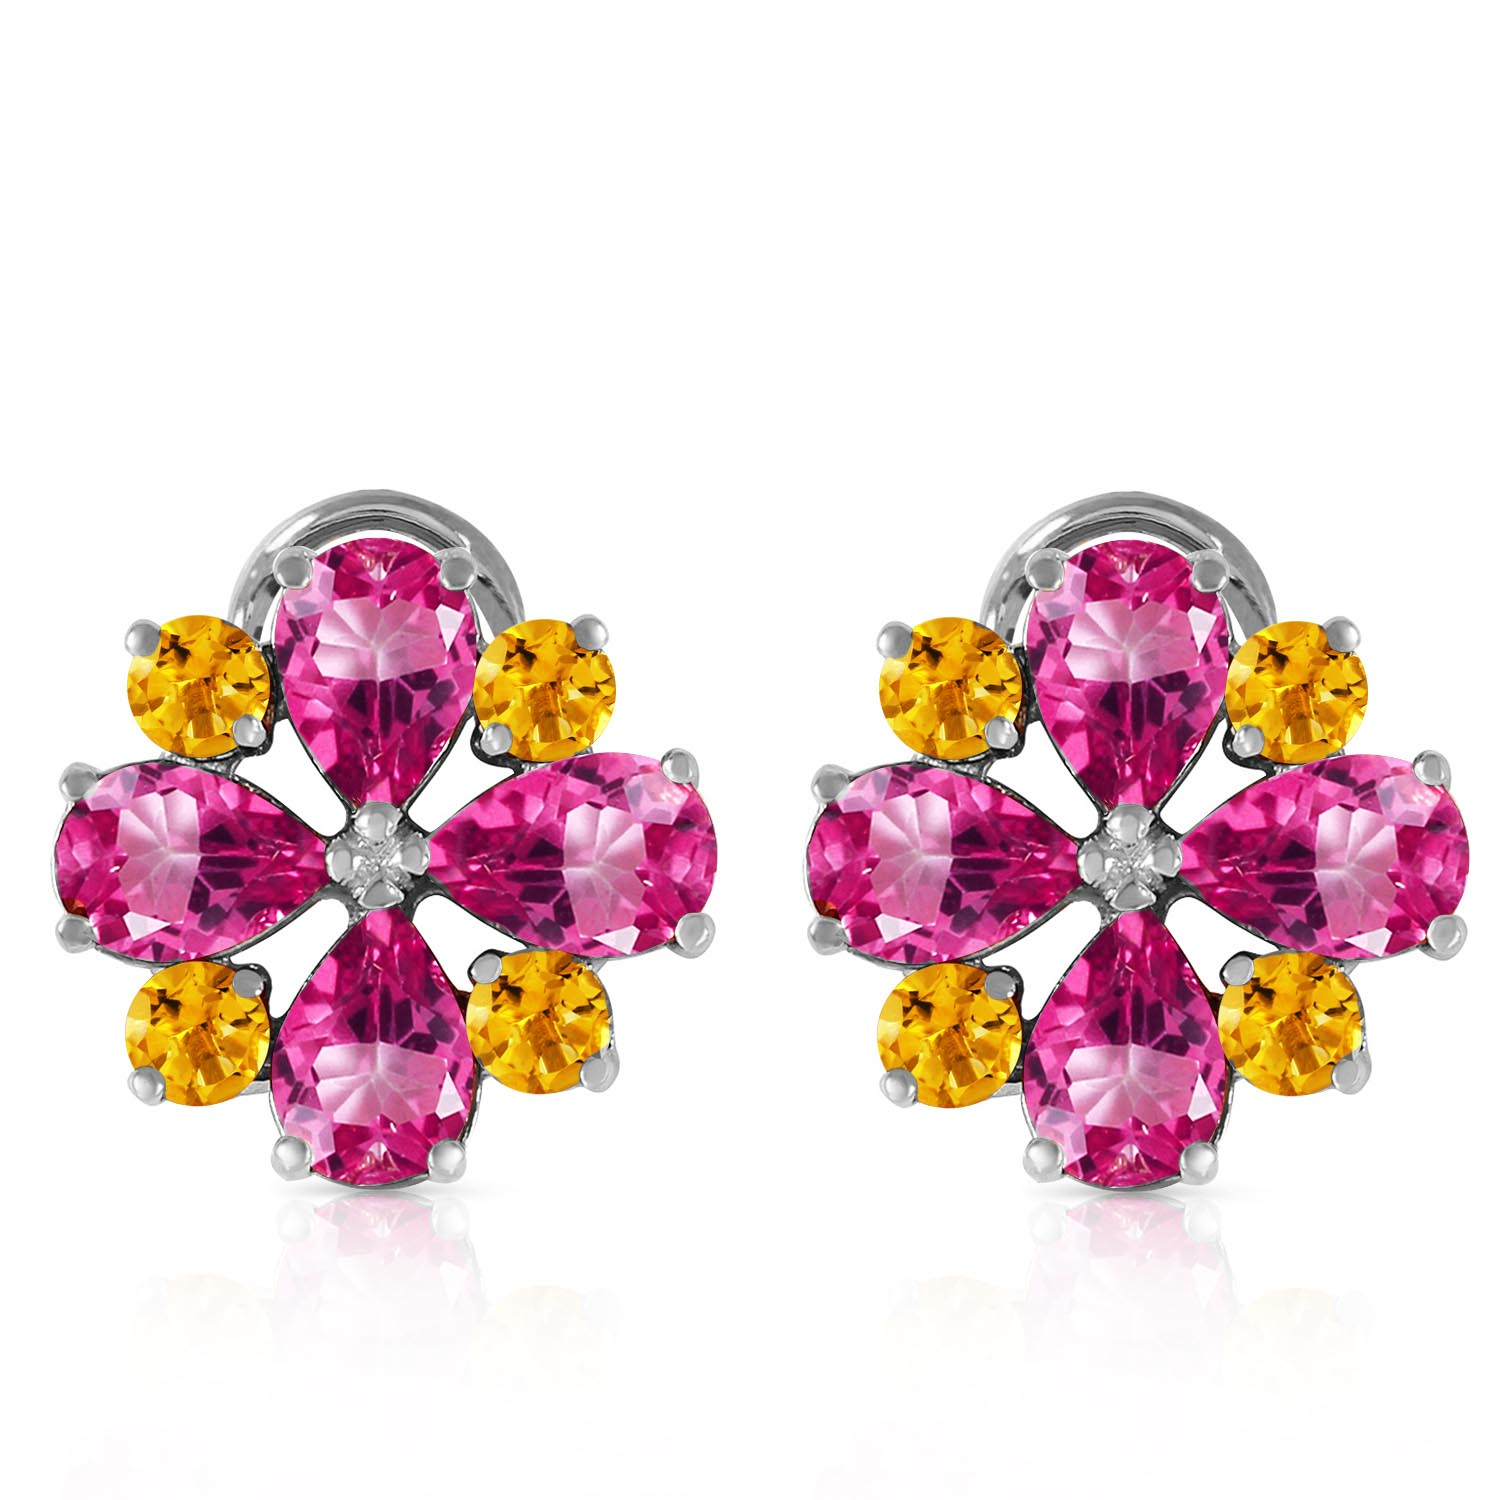 Pink Topaz and Citrine Sunflower Stud French Clip Earrings 4.85ctw in 9ct White Gold